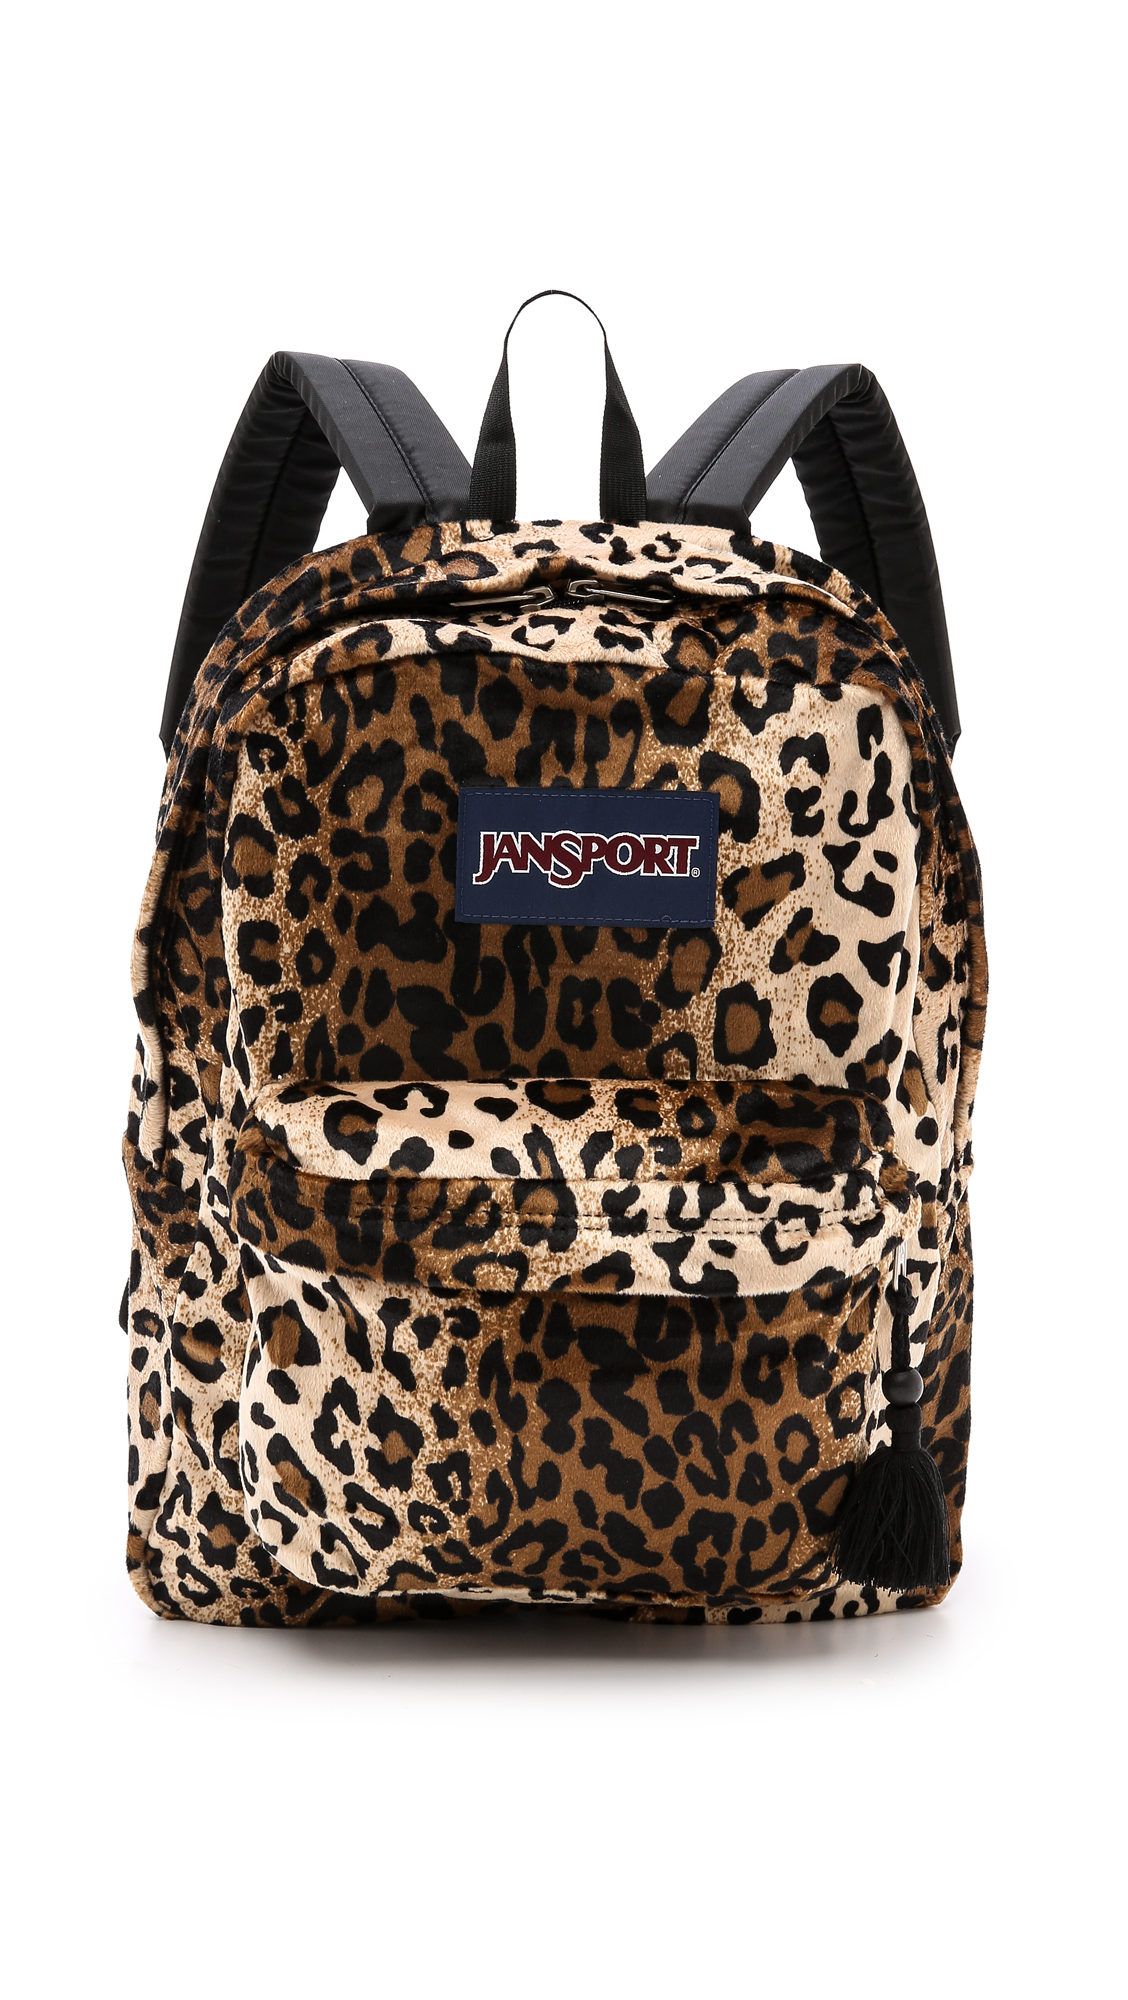 Jansport High Stakes Backpack - Black/Beige Plush Cheetah | Lyst